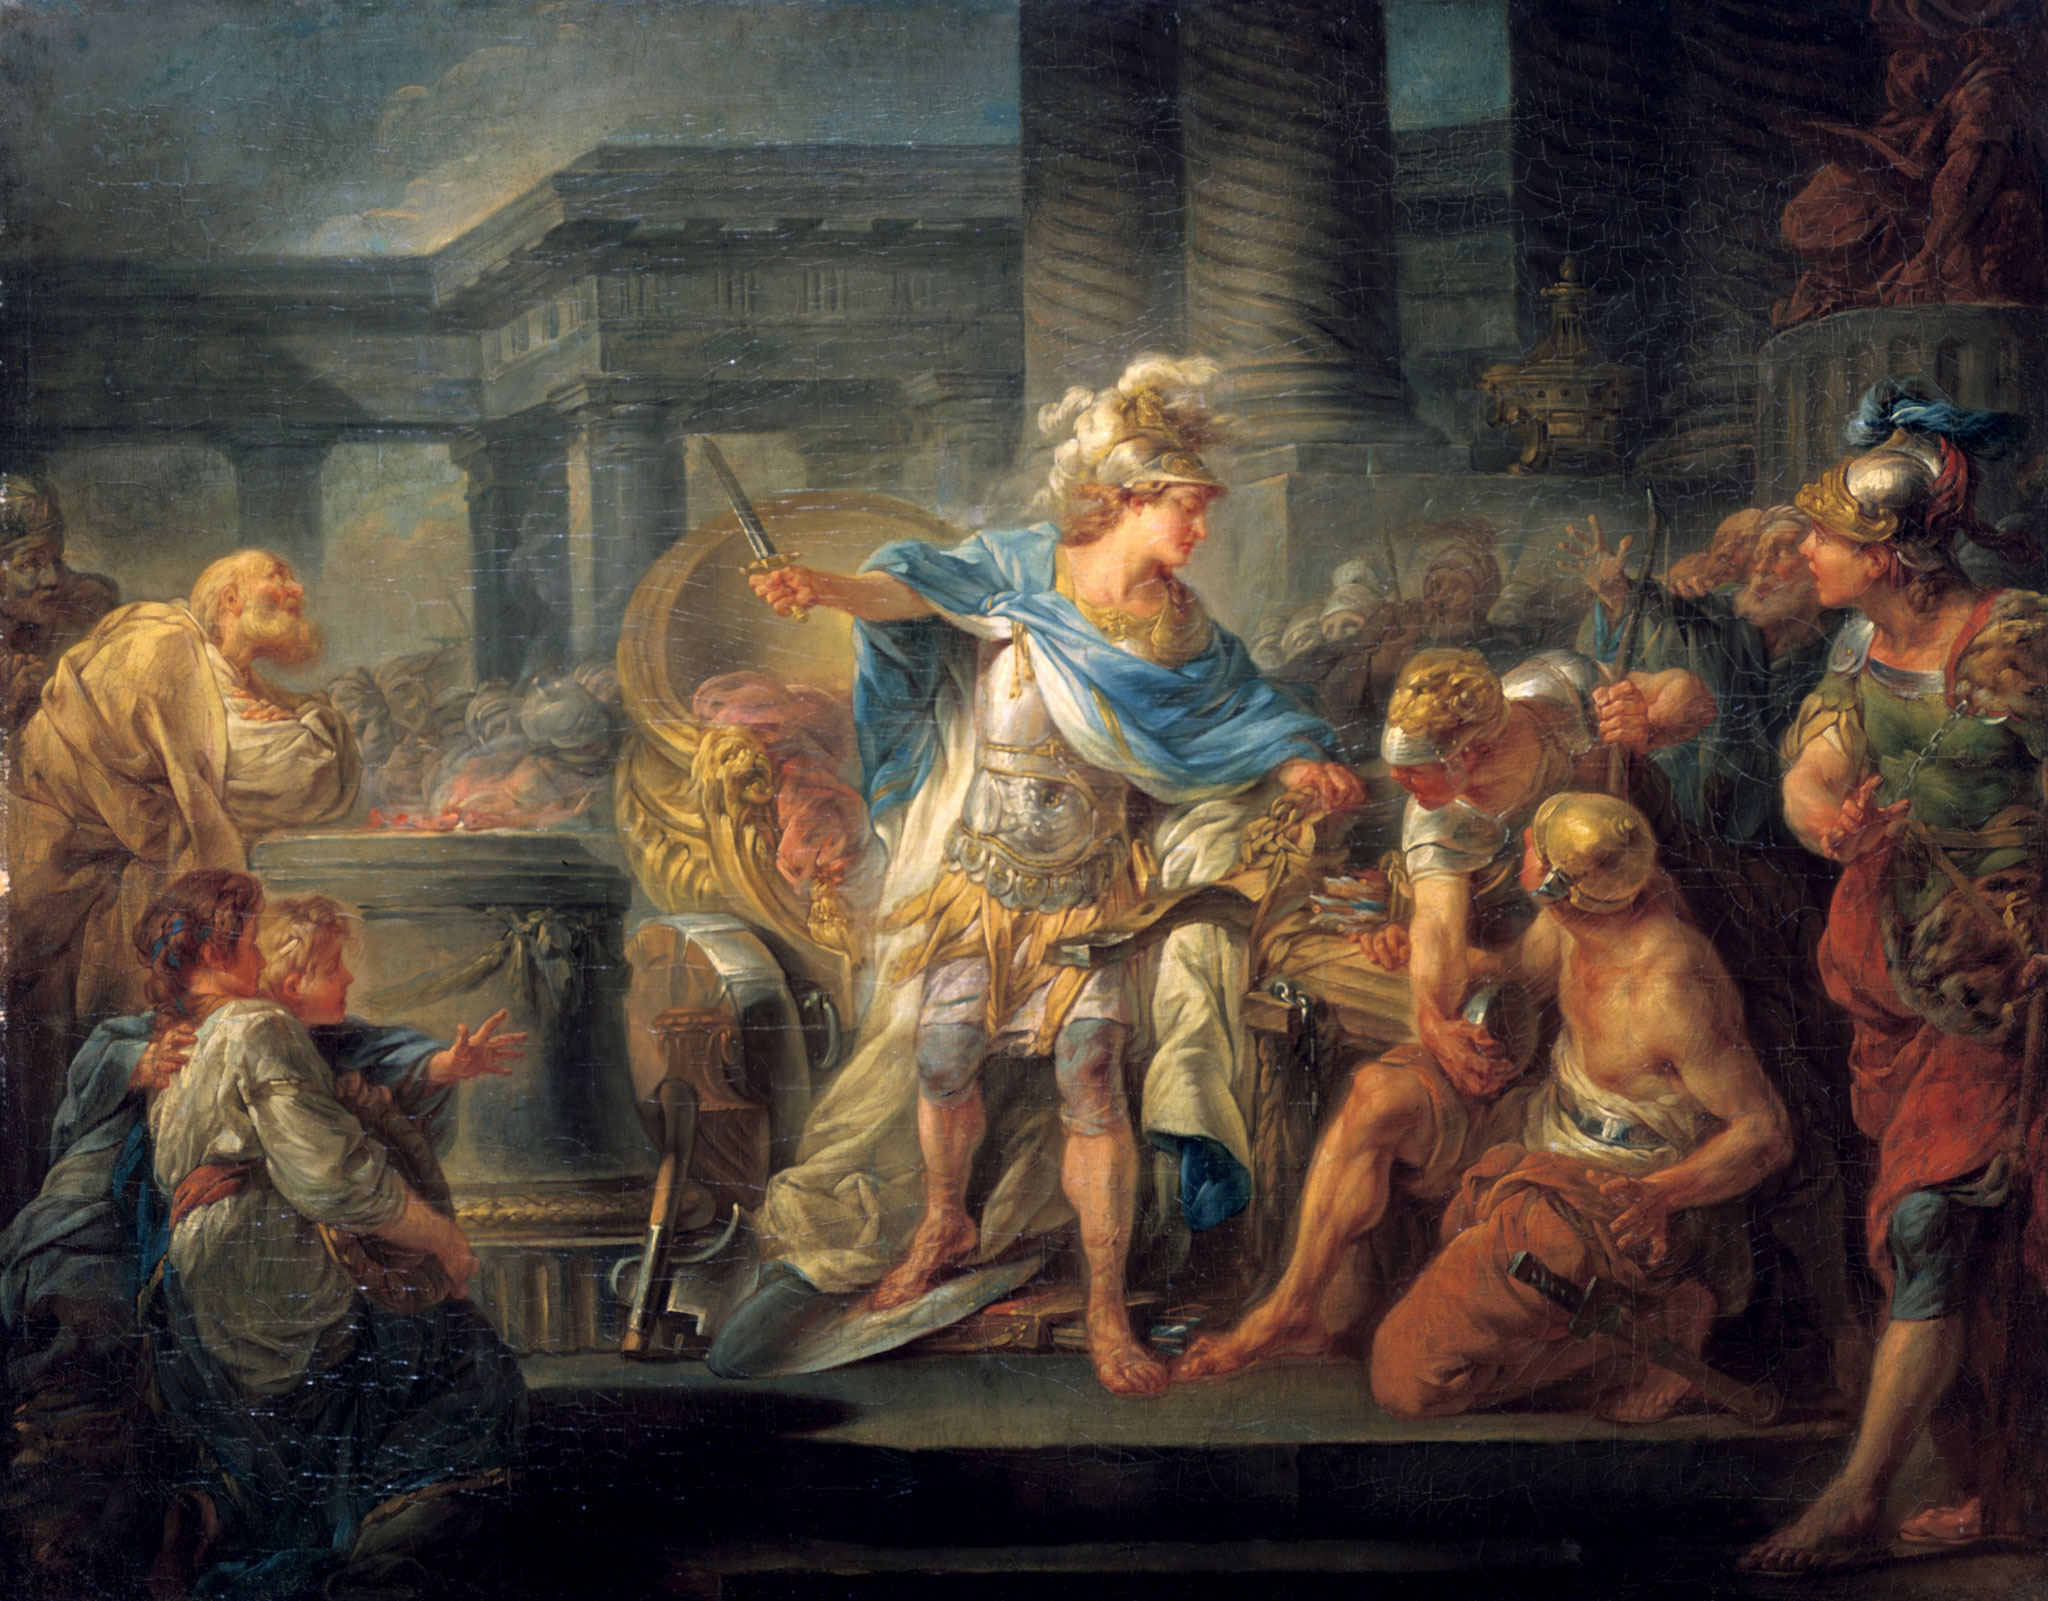 Alexander the Great cuts the Gordian Knot!